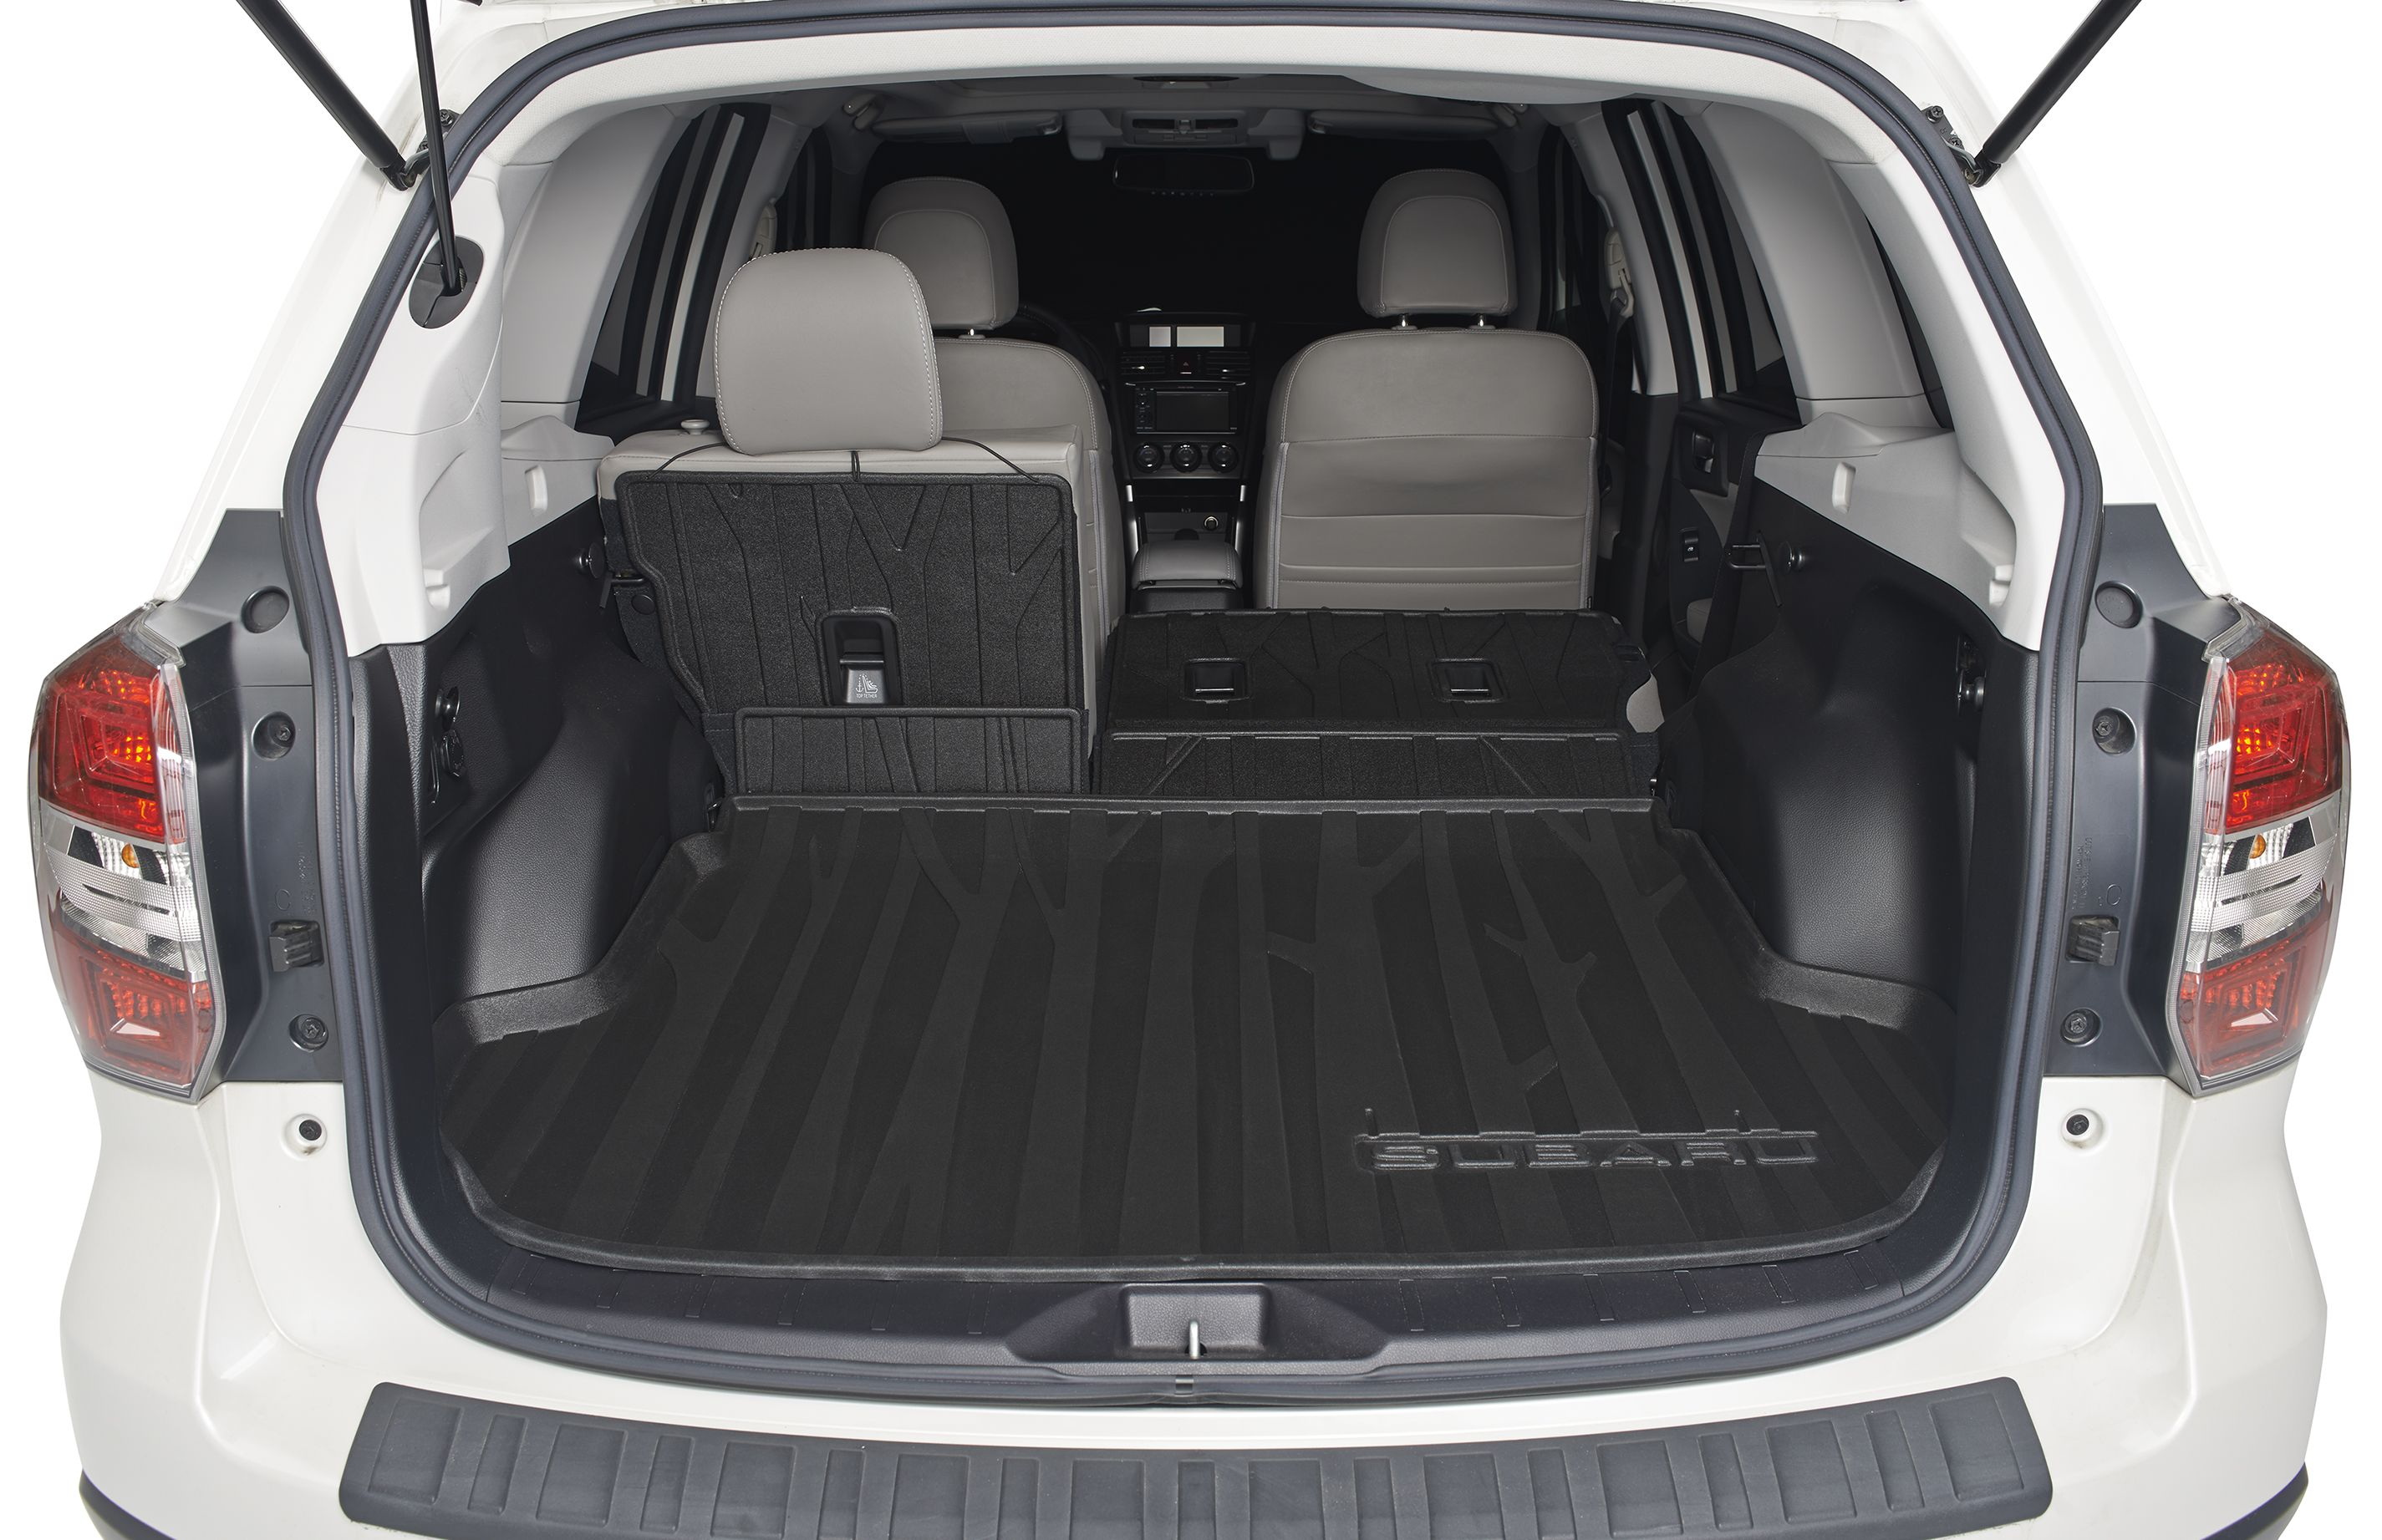 Rear Seatback Protector This Fits Your Subaru Subaru Forester